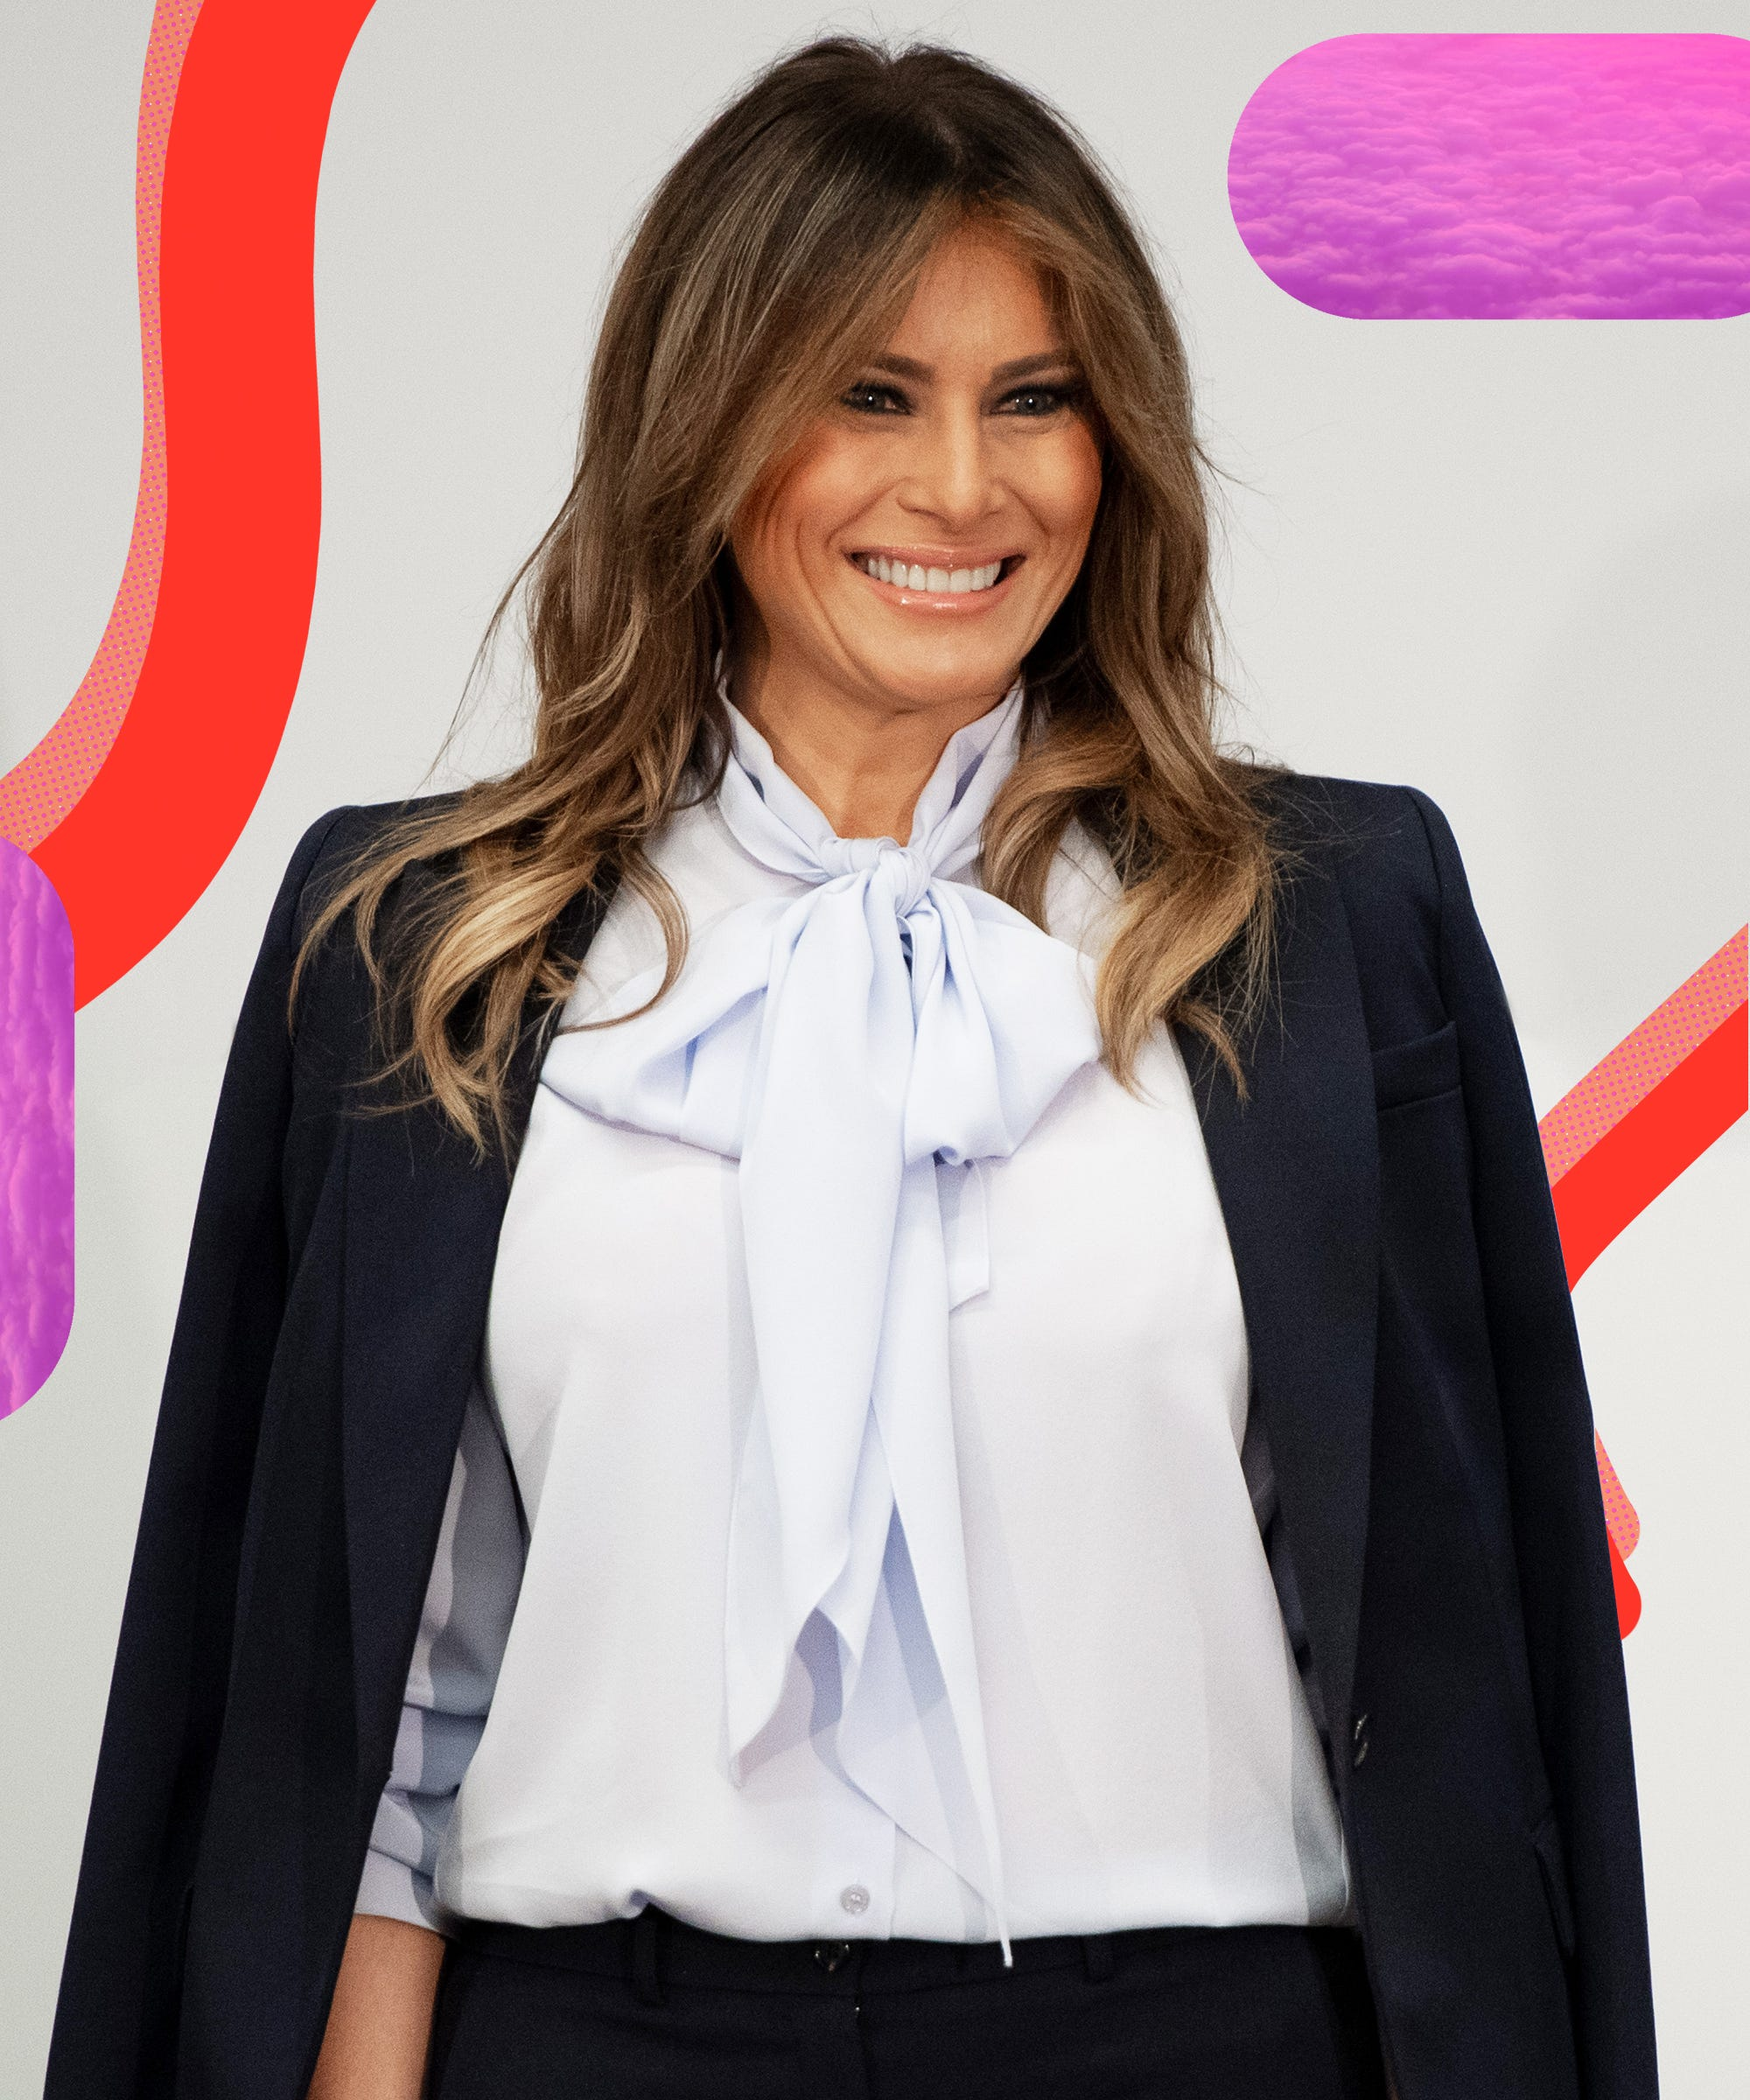 Melania Trump Hair Stylist Reveals FLOTUS Hair Secrets